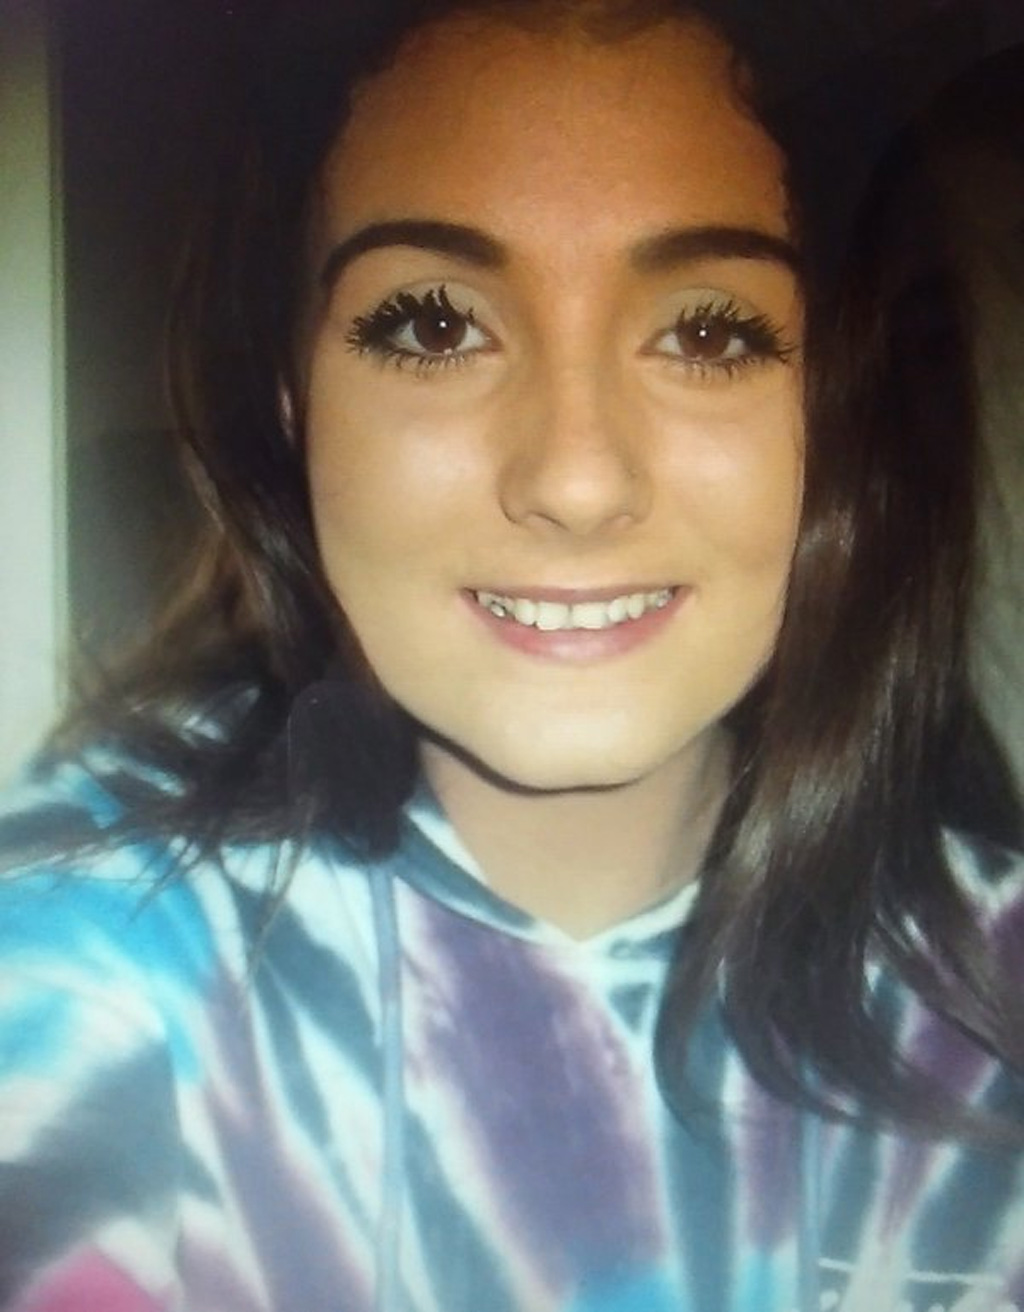 Concerns grow for 15-year-old girl who was last seen at house in Beenleigh area 10 days ago